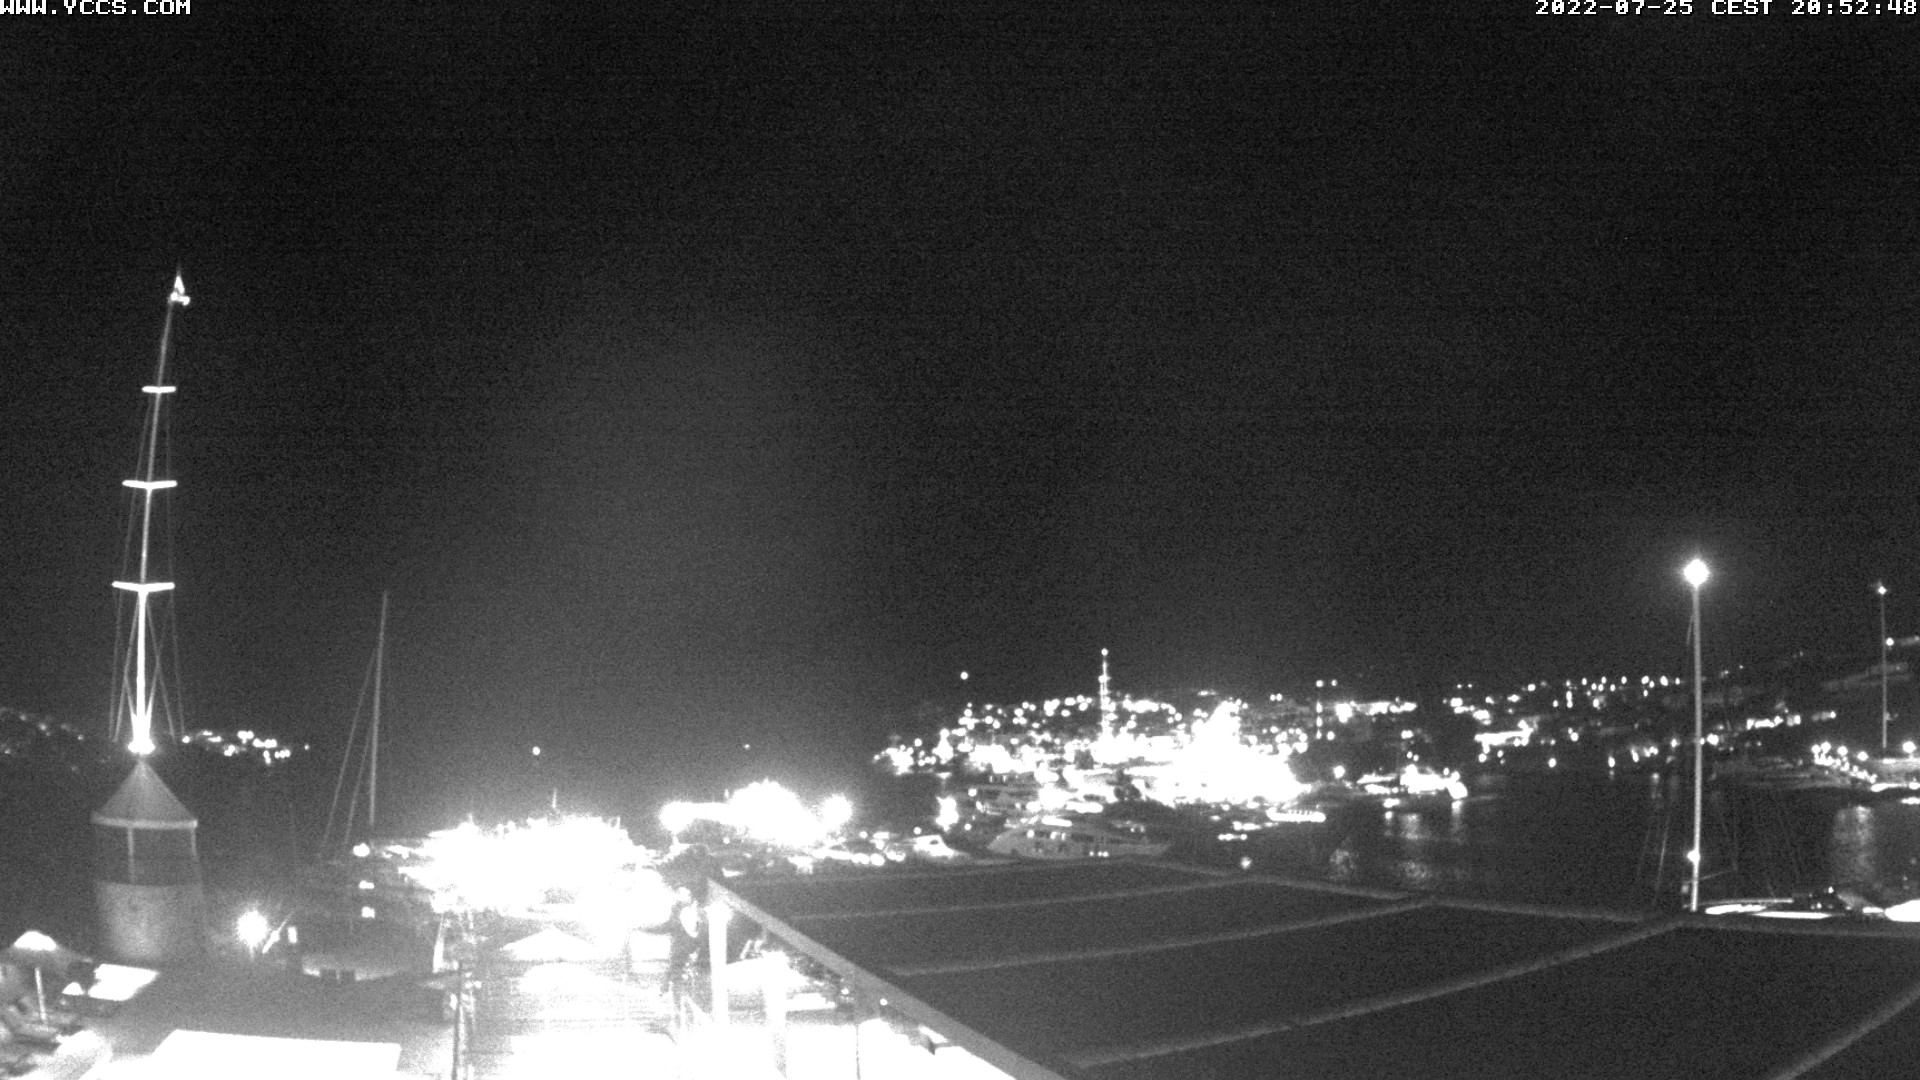 Webcam Porto Cervo by Yacht Club Costa Smeralda